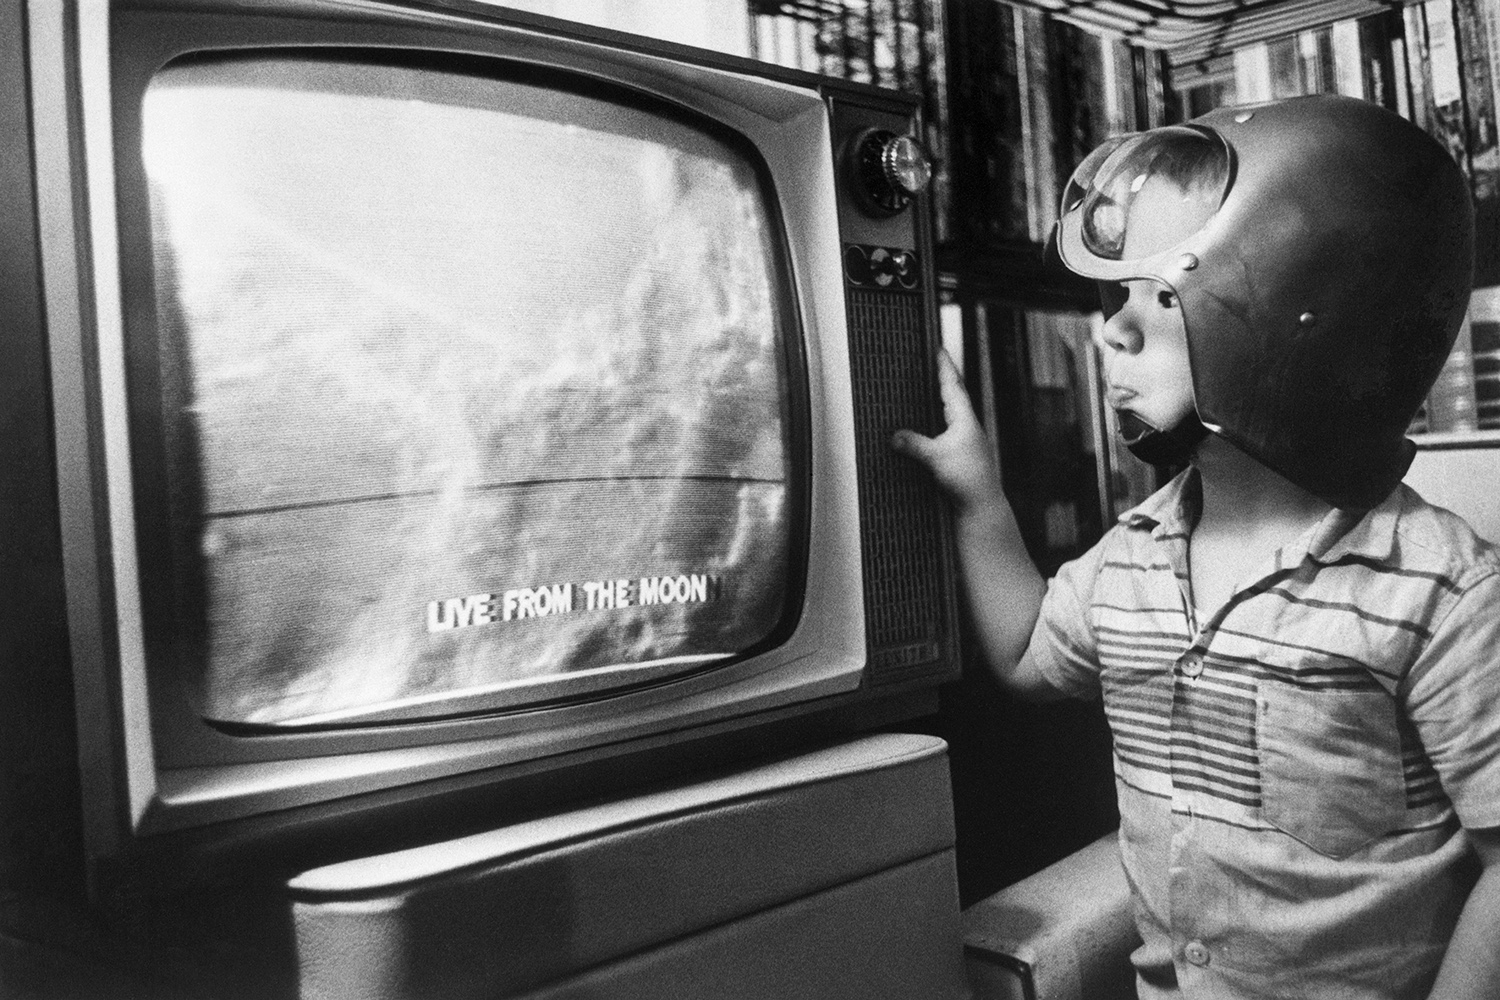 A boy watches the first television images from the moon.